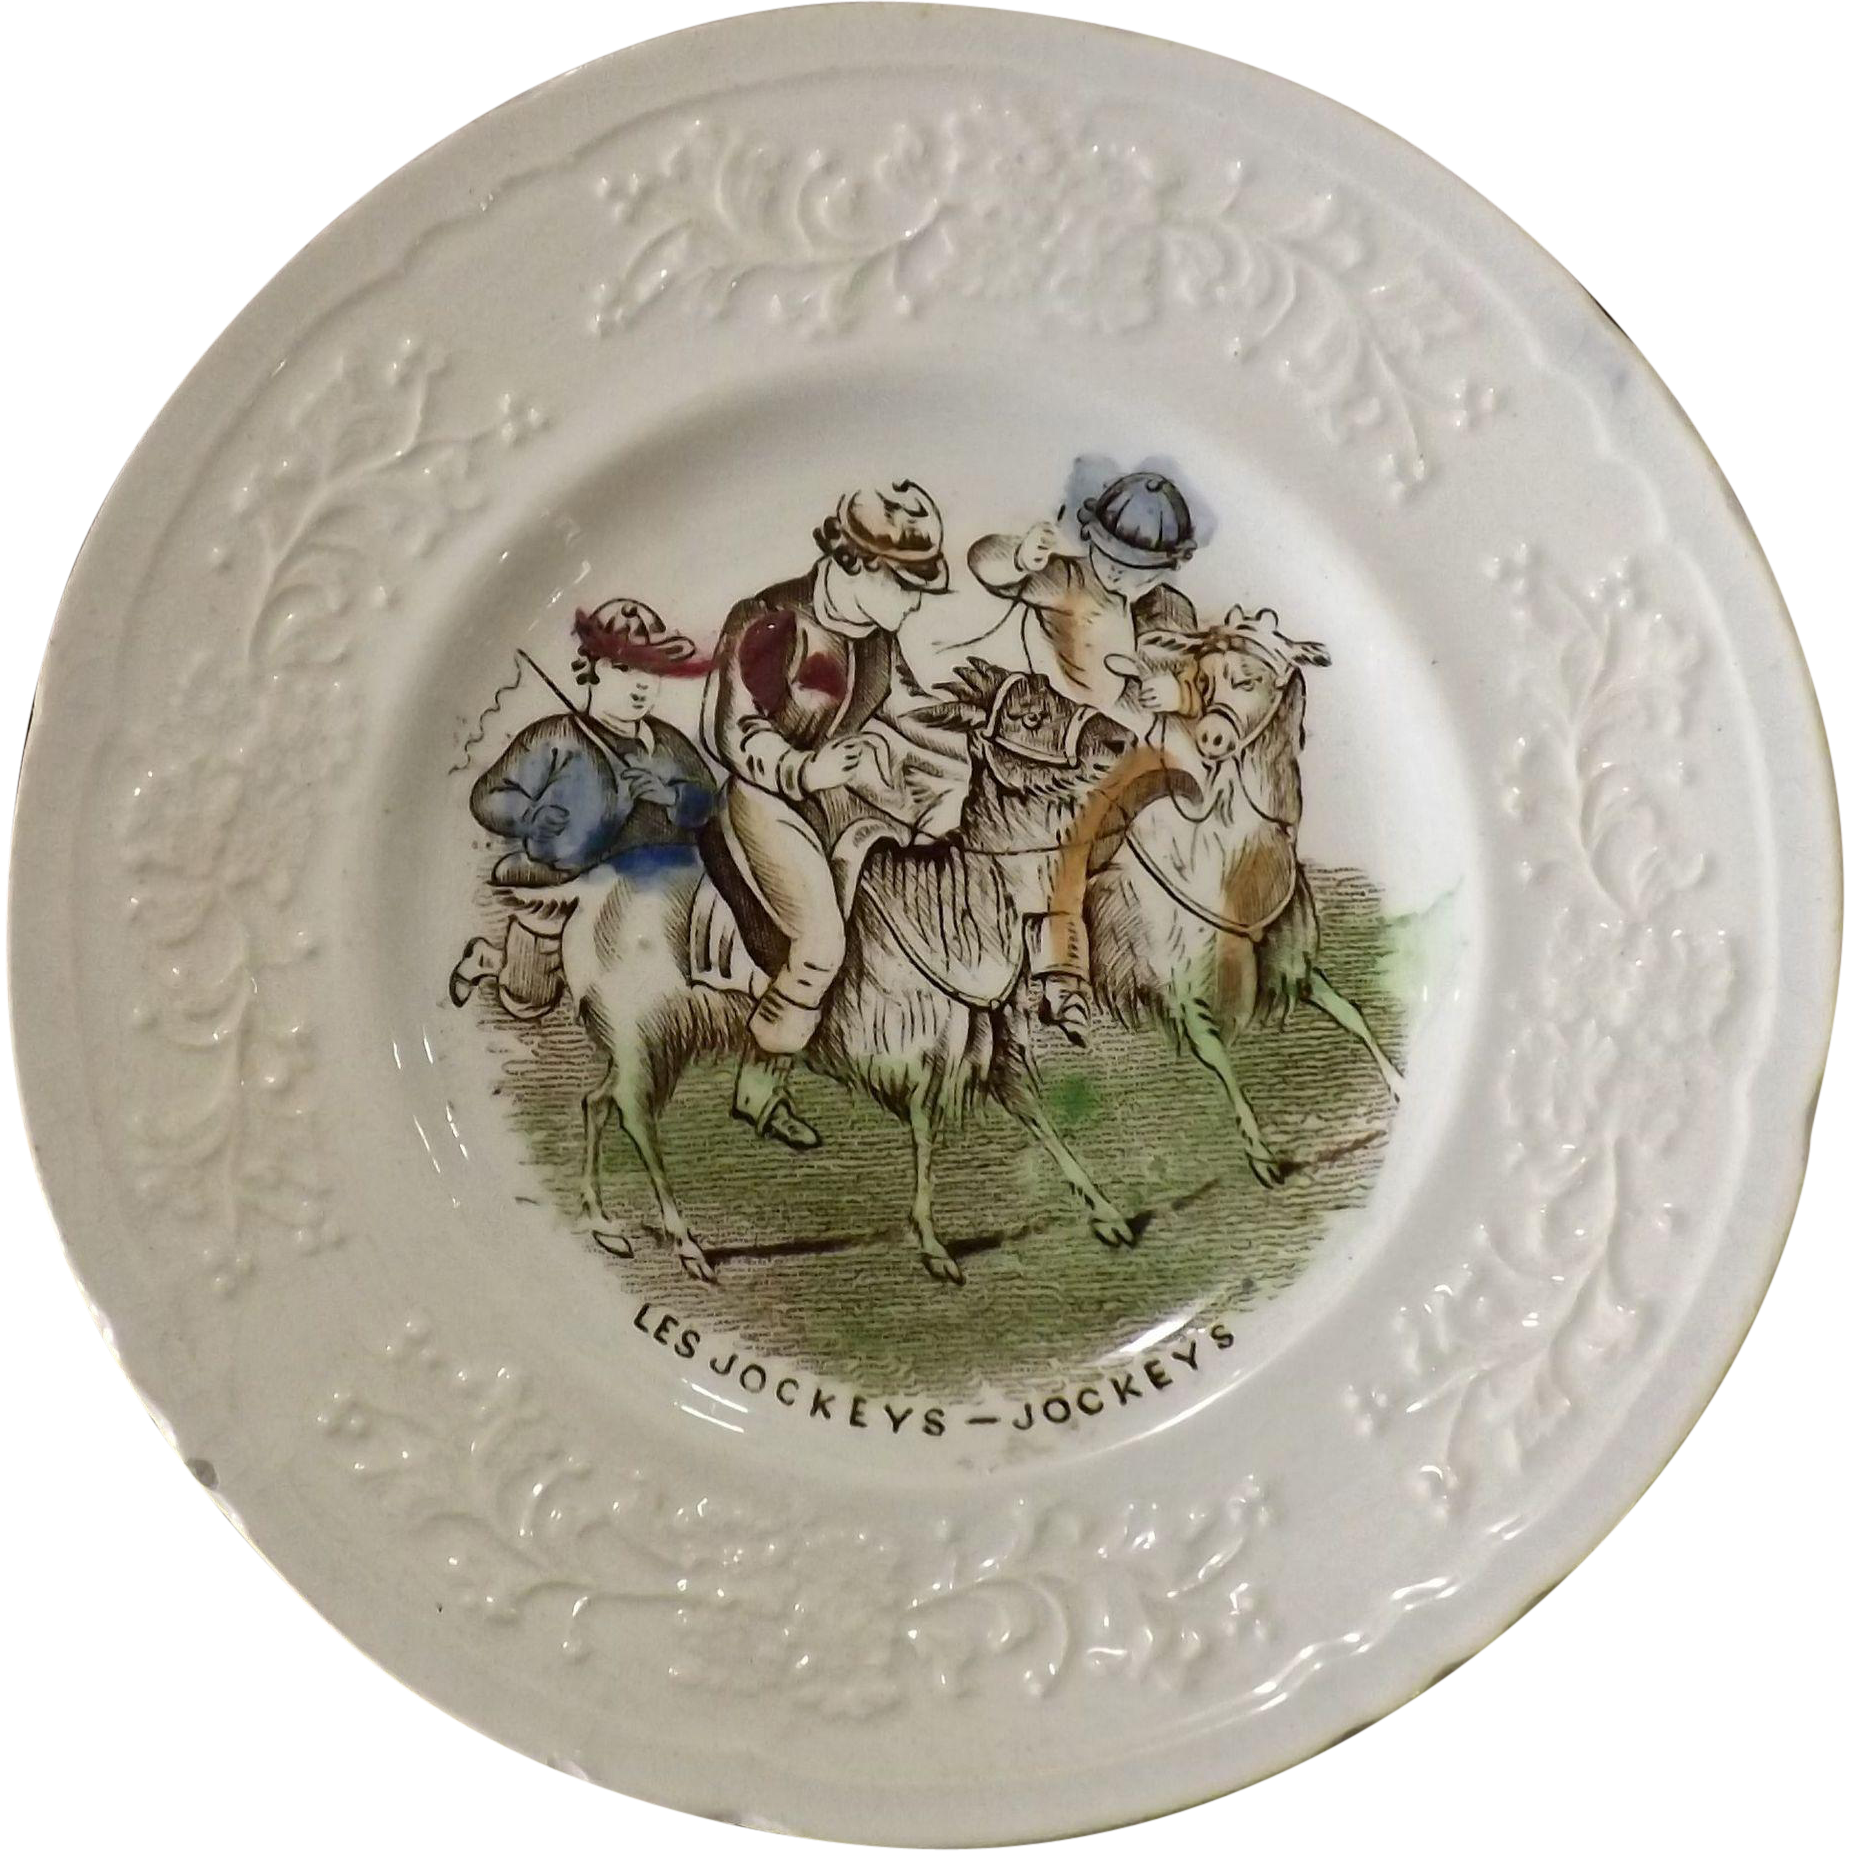 Victorian Child's Decorated Plate -Les Jockeys - Jockeys